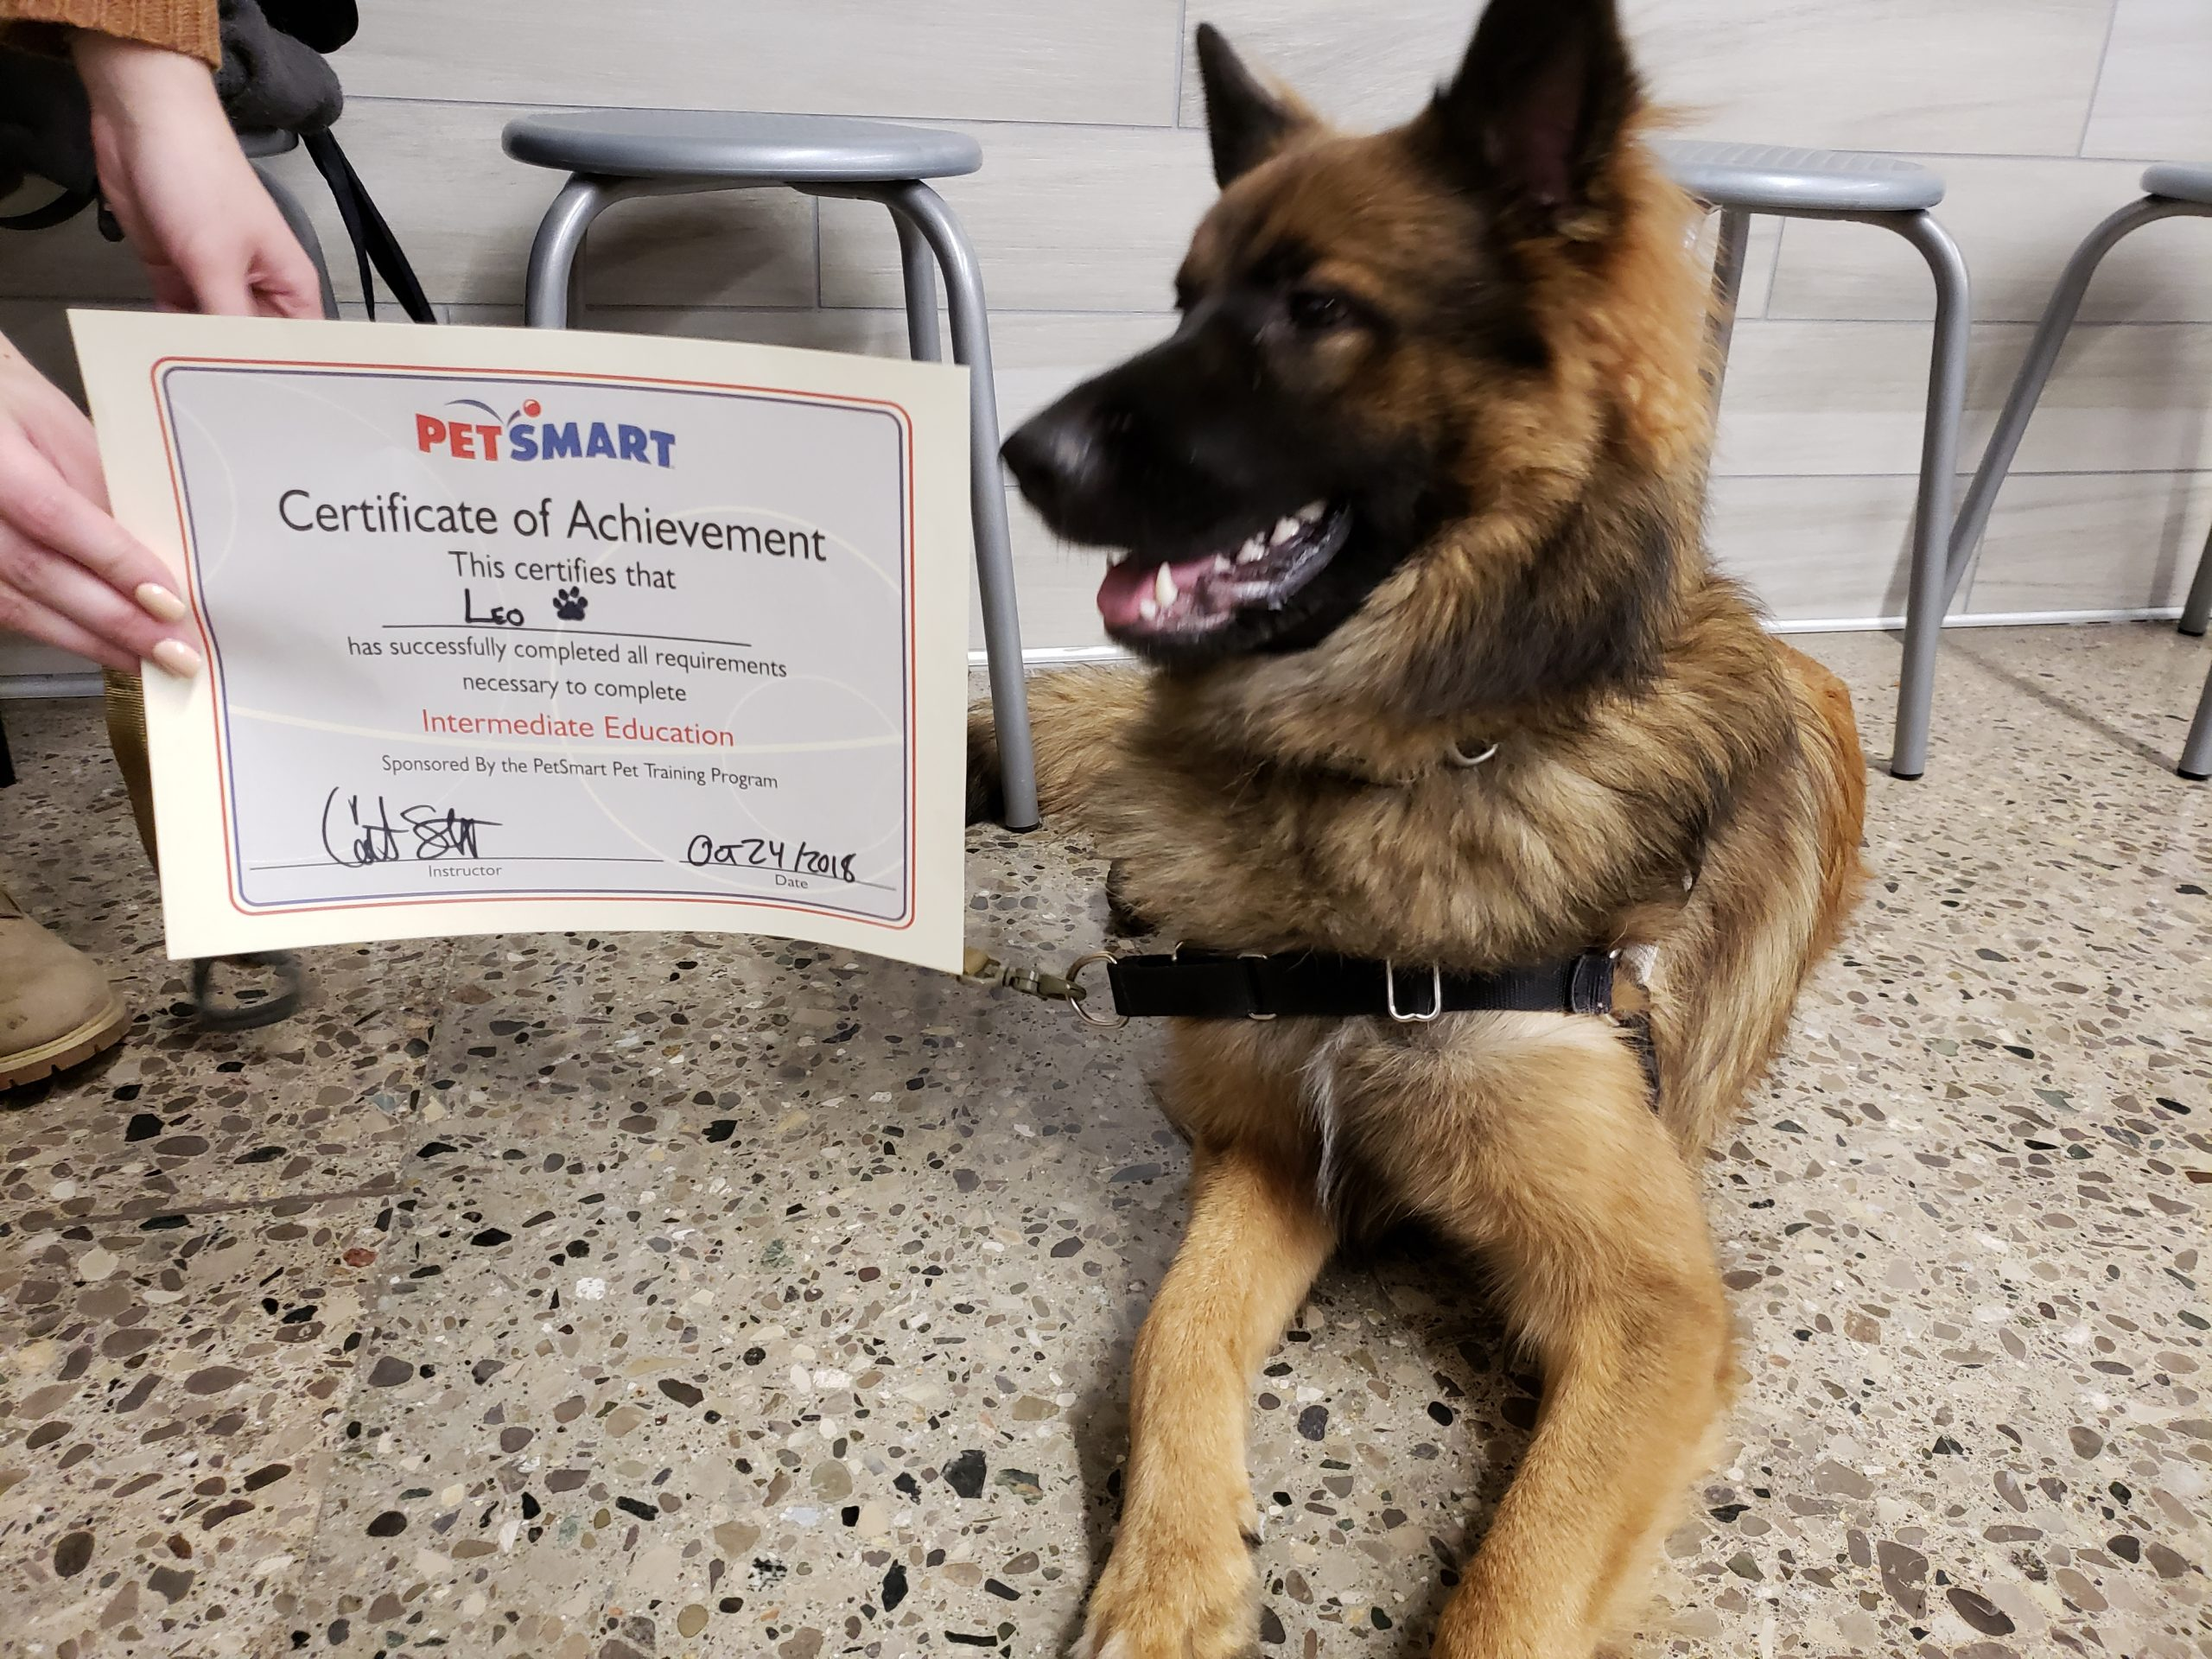 Positive reinforcement builds bonds between owners and dogs